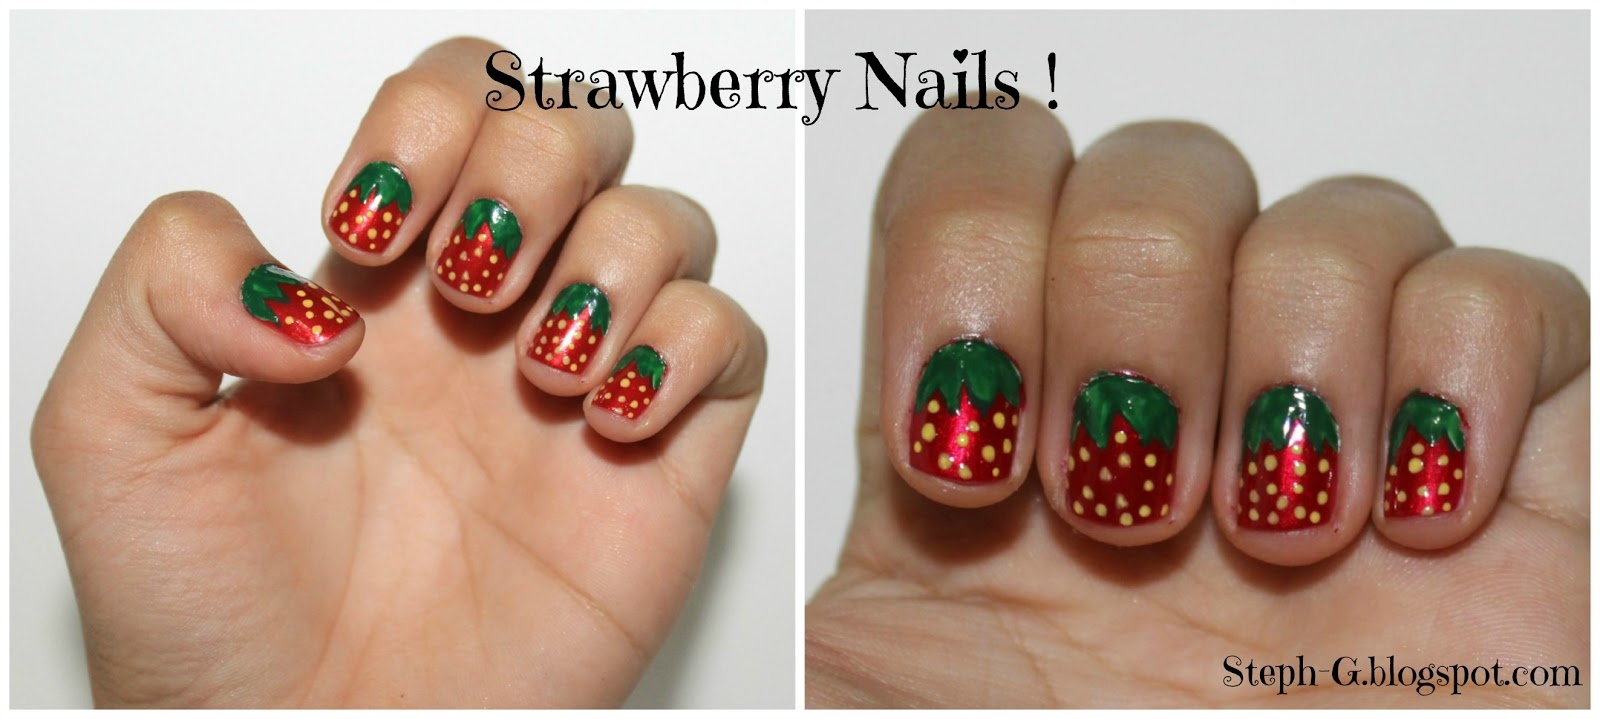 Steph G Nail Polishness Strawberry Nails With Step By Step Guide